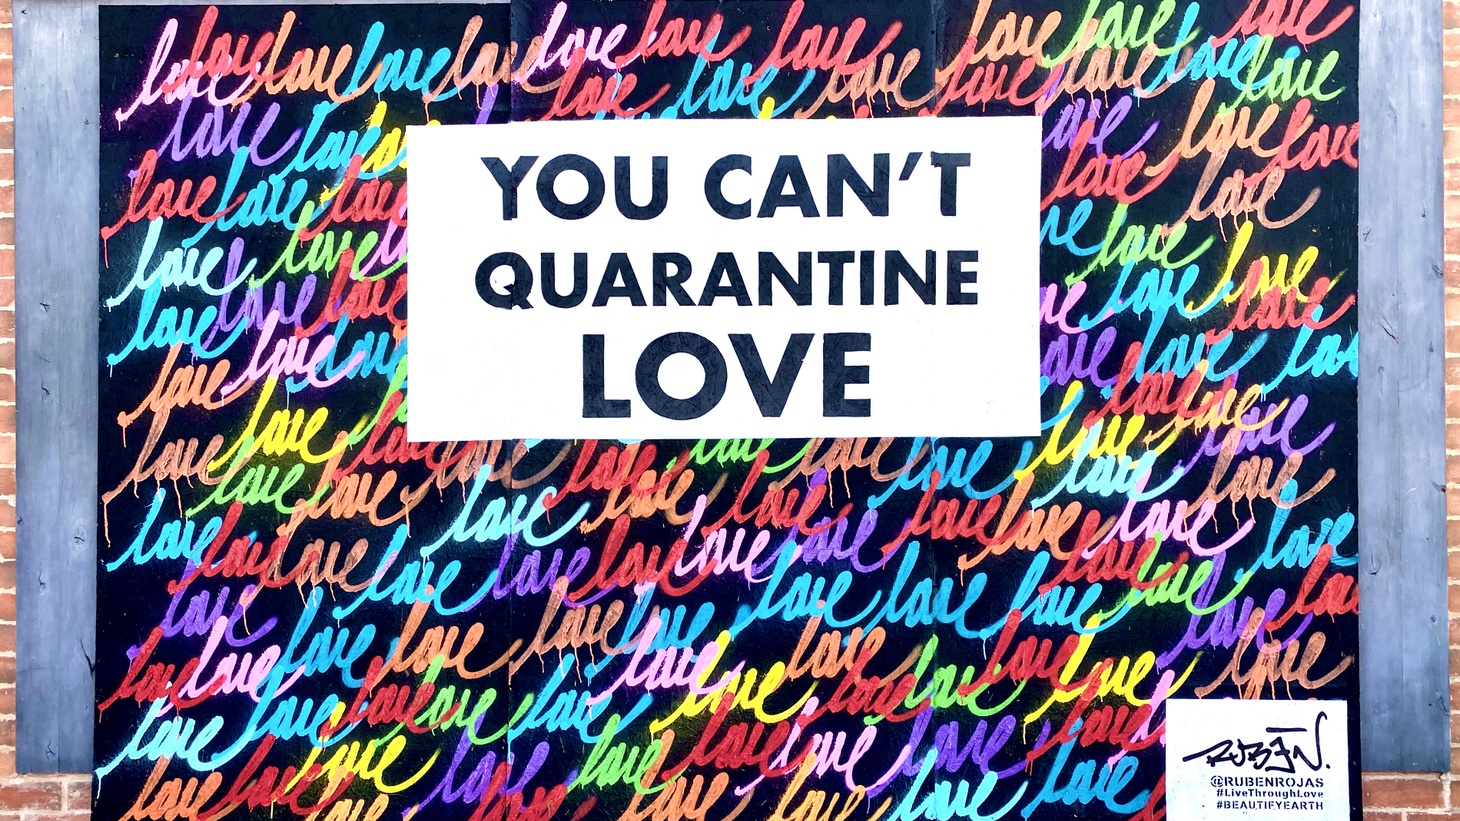 A new mural in Santa Monica says you can't quarantine love. What bright spots from the pandemic do you hope will last?